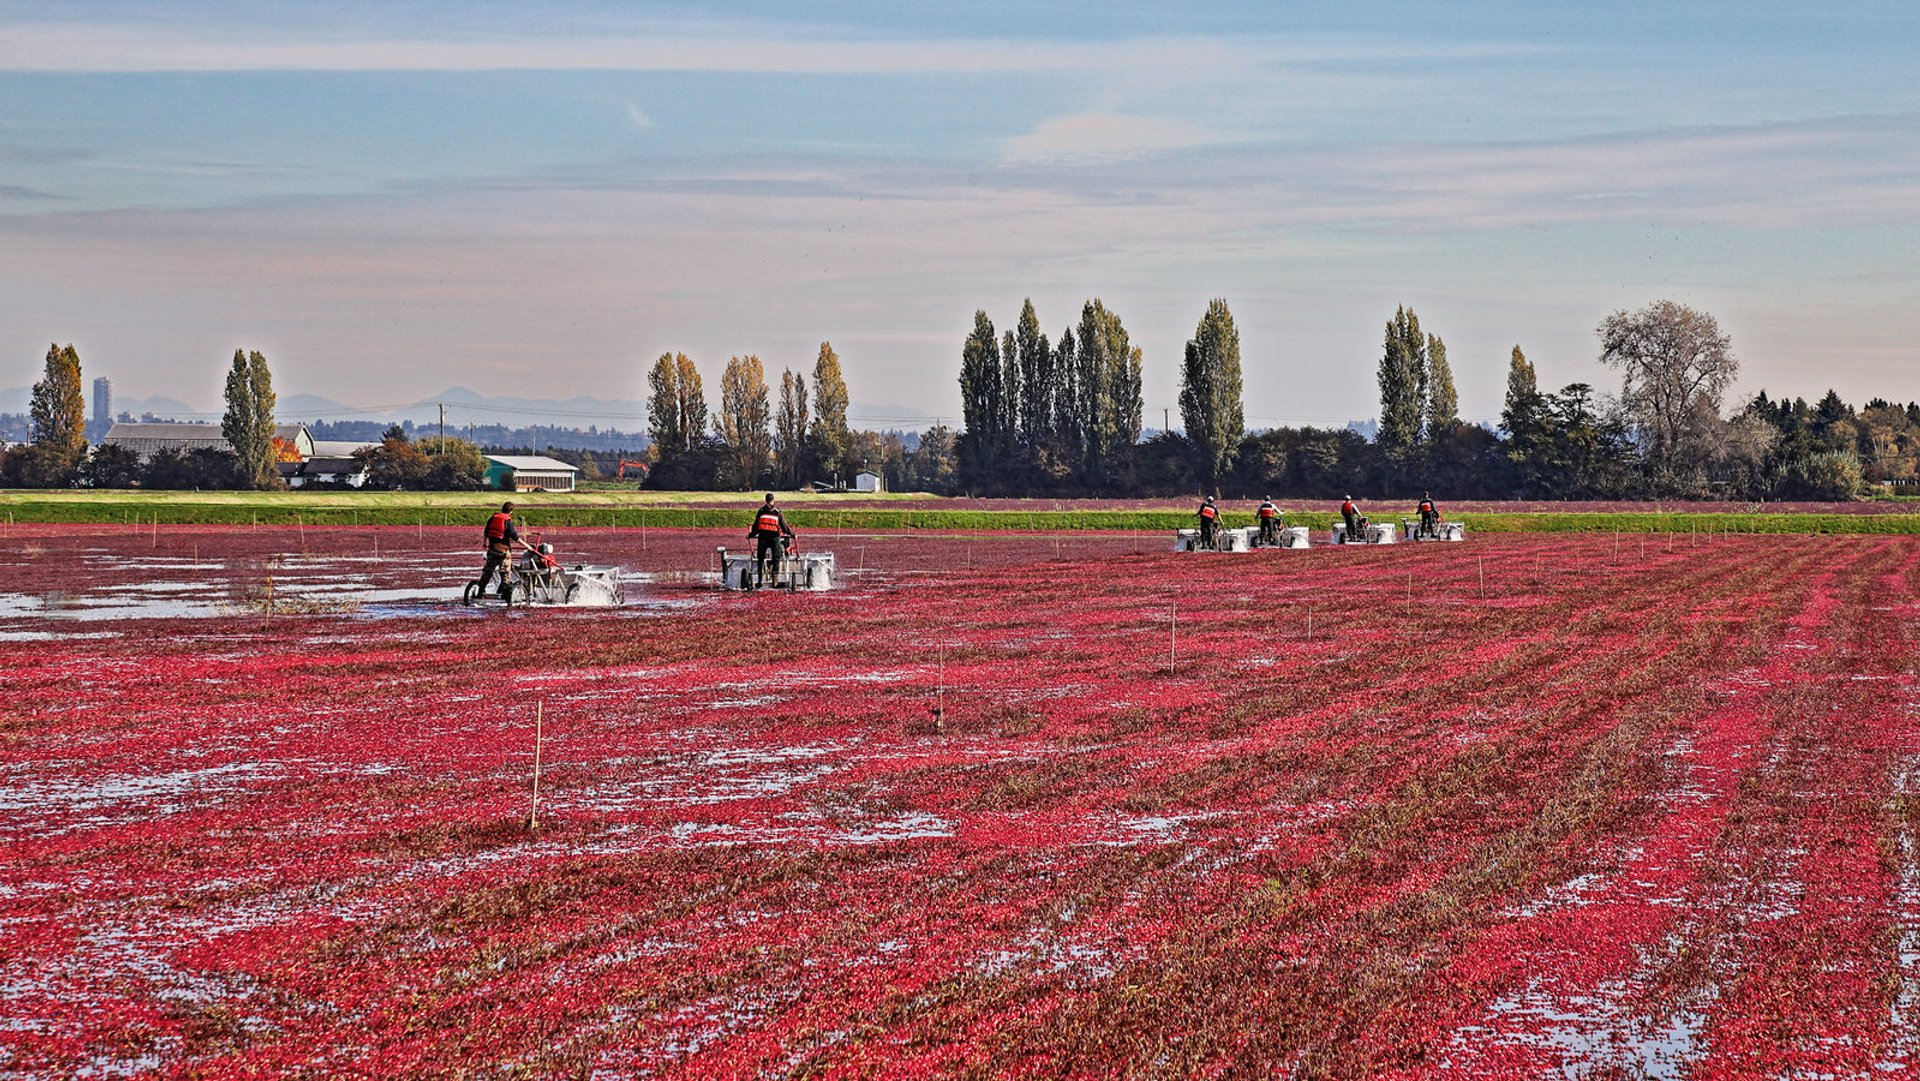 Cranberry farm in Delta 2020